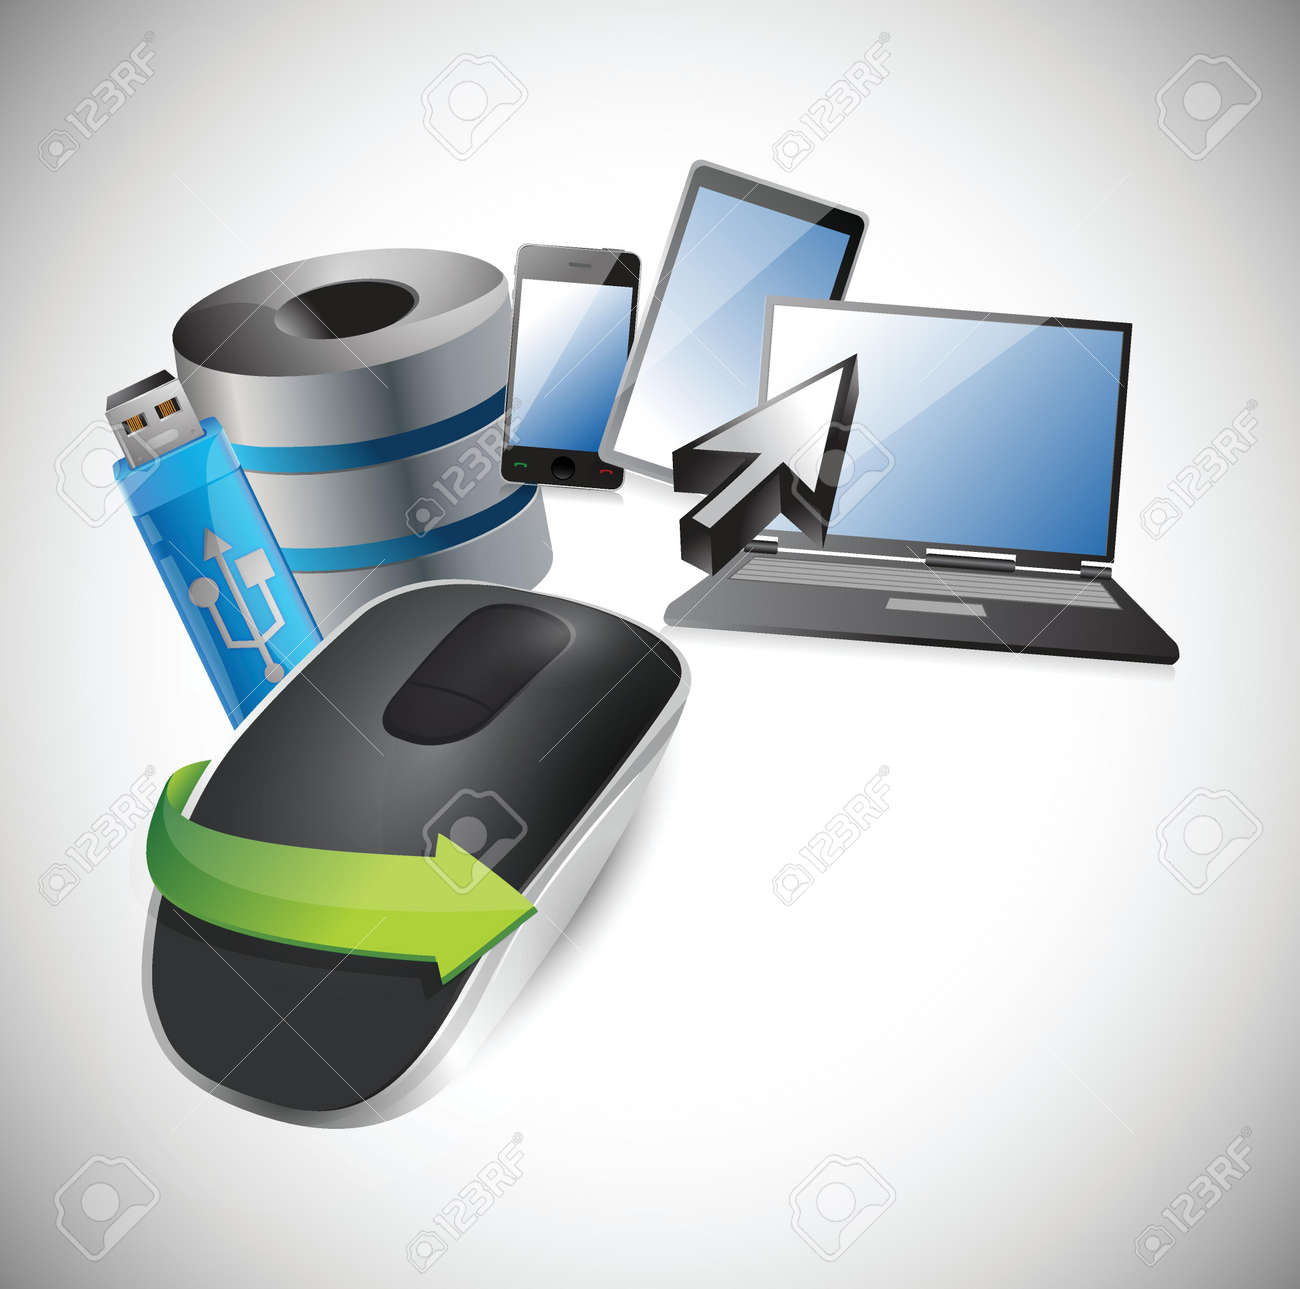 electronic tools. Wireless computer mouse isolated on white background Stock Vector - 18913126